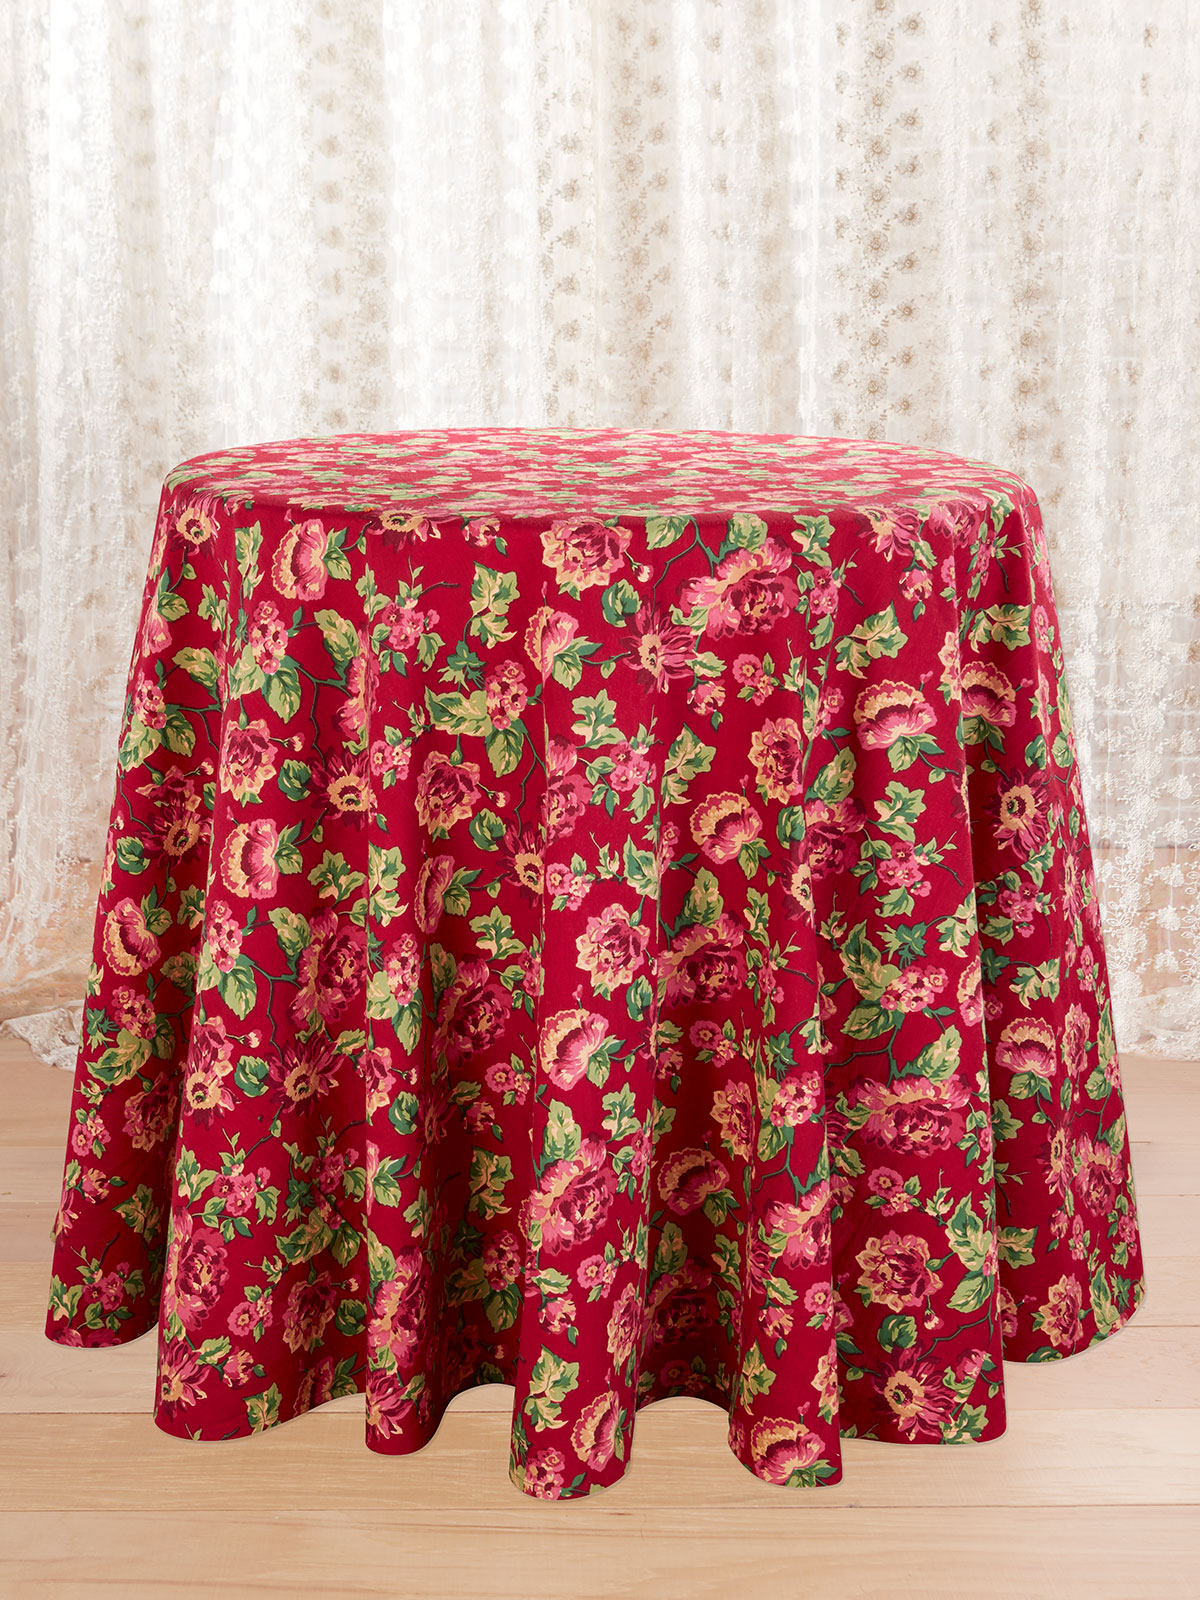 Russia Round Tablecloth